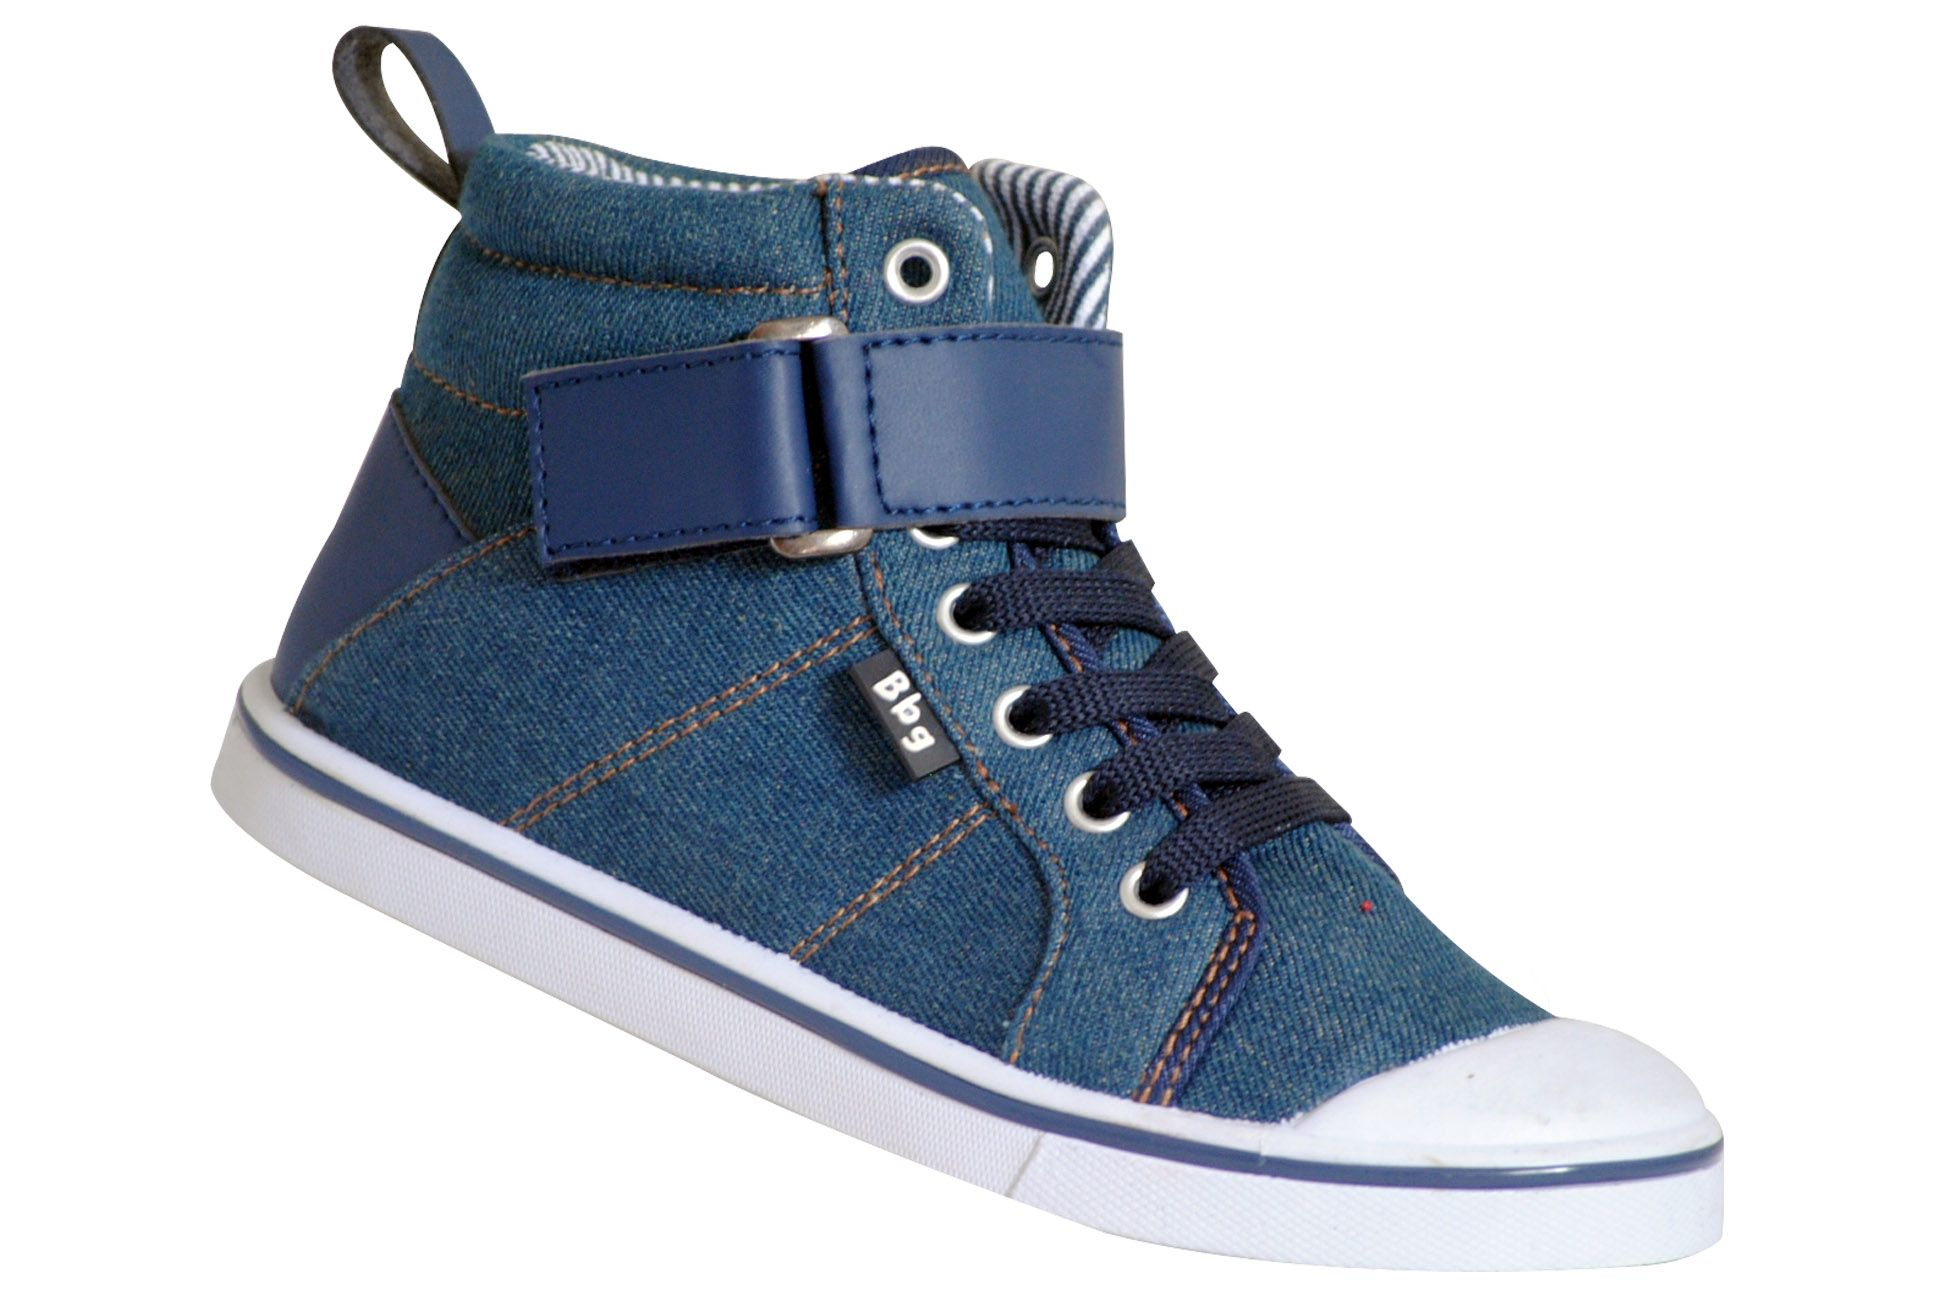 info for 3f326 77378 Boys Sneakers   Bata Boy Fashion, High Tops, High Top Sneakers, Footwear,